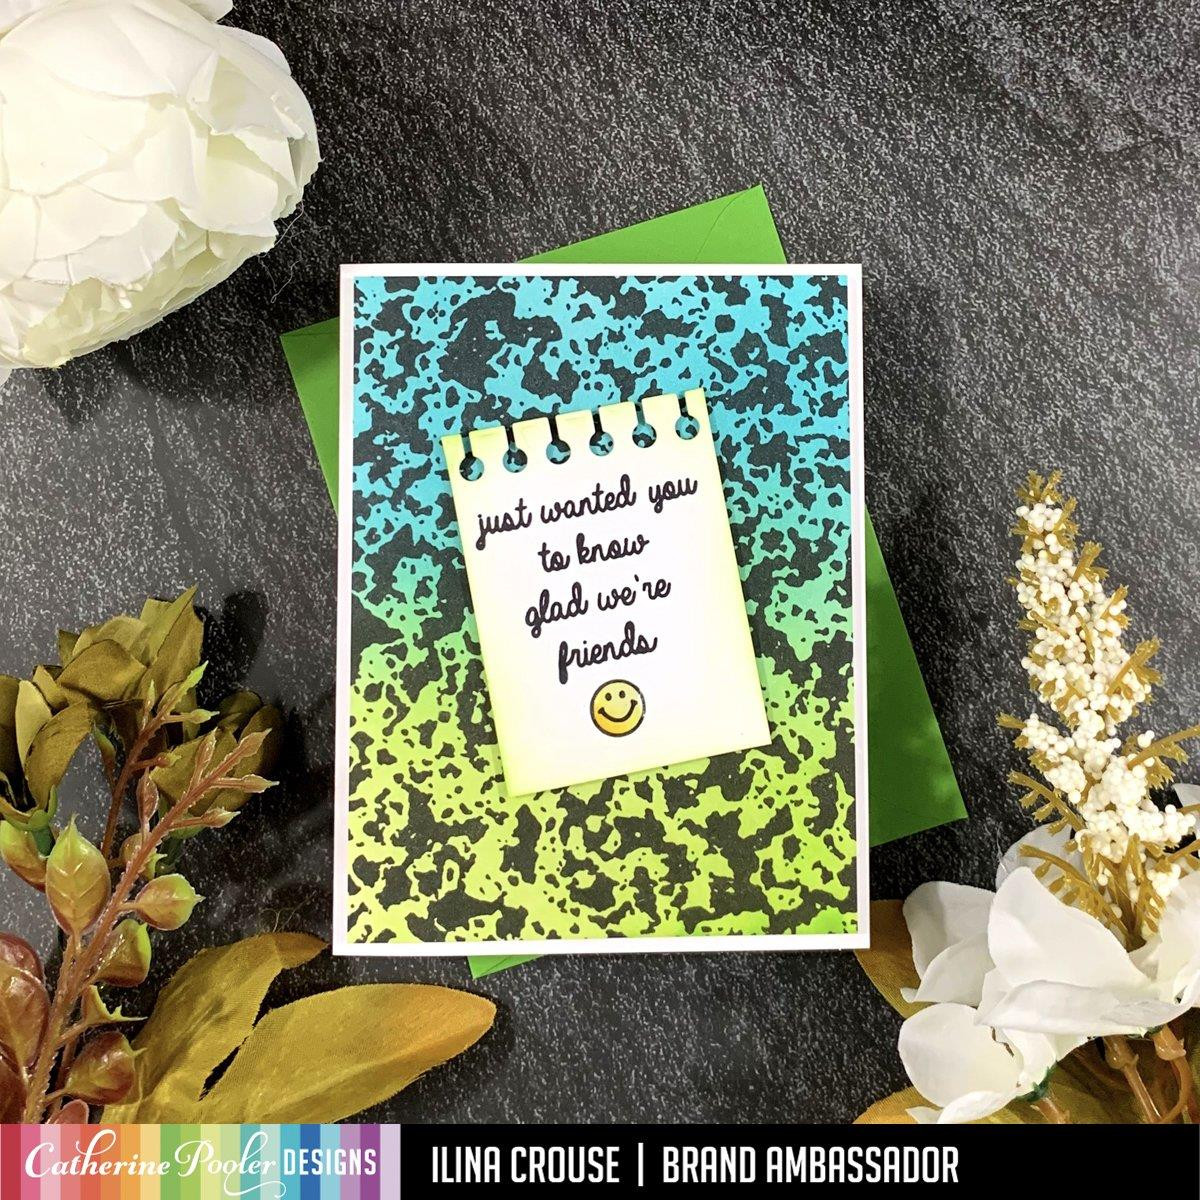 Composition Sentiments, Catherine Pooler Clear Stamps - 819447026951